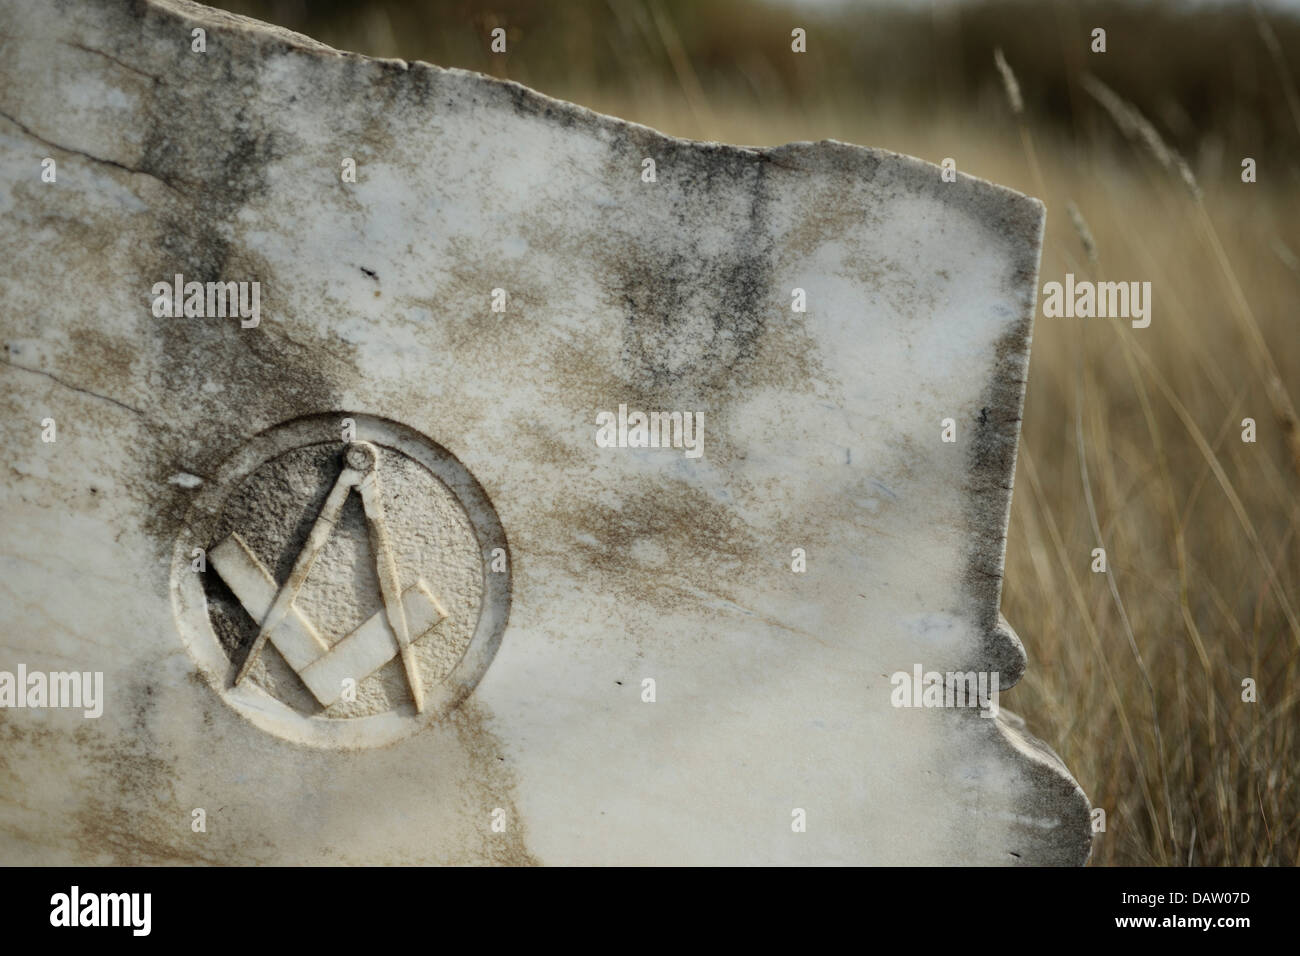 A broken tombstone with Freemason sign from the diamond rush era near Barkly West, South Africa. - Stock Image